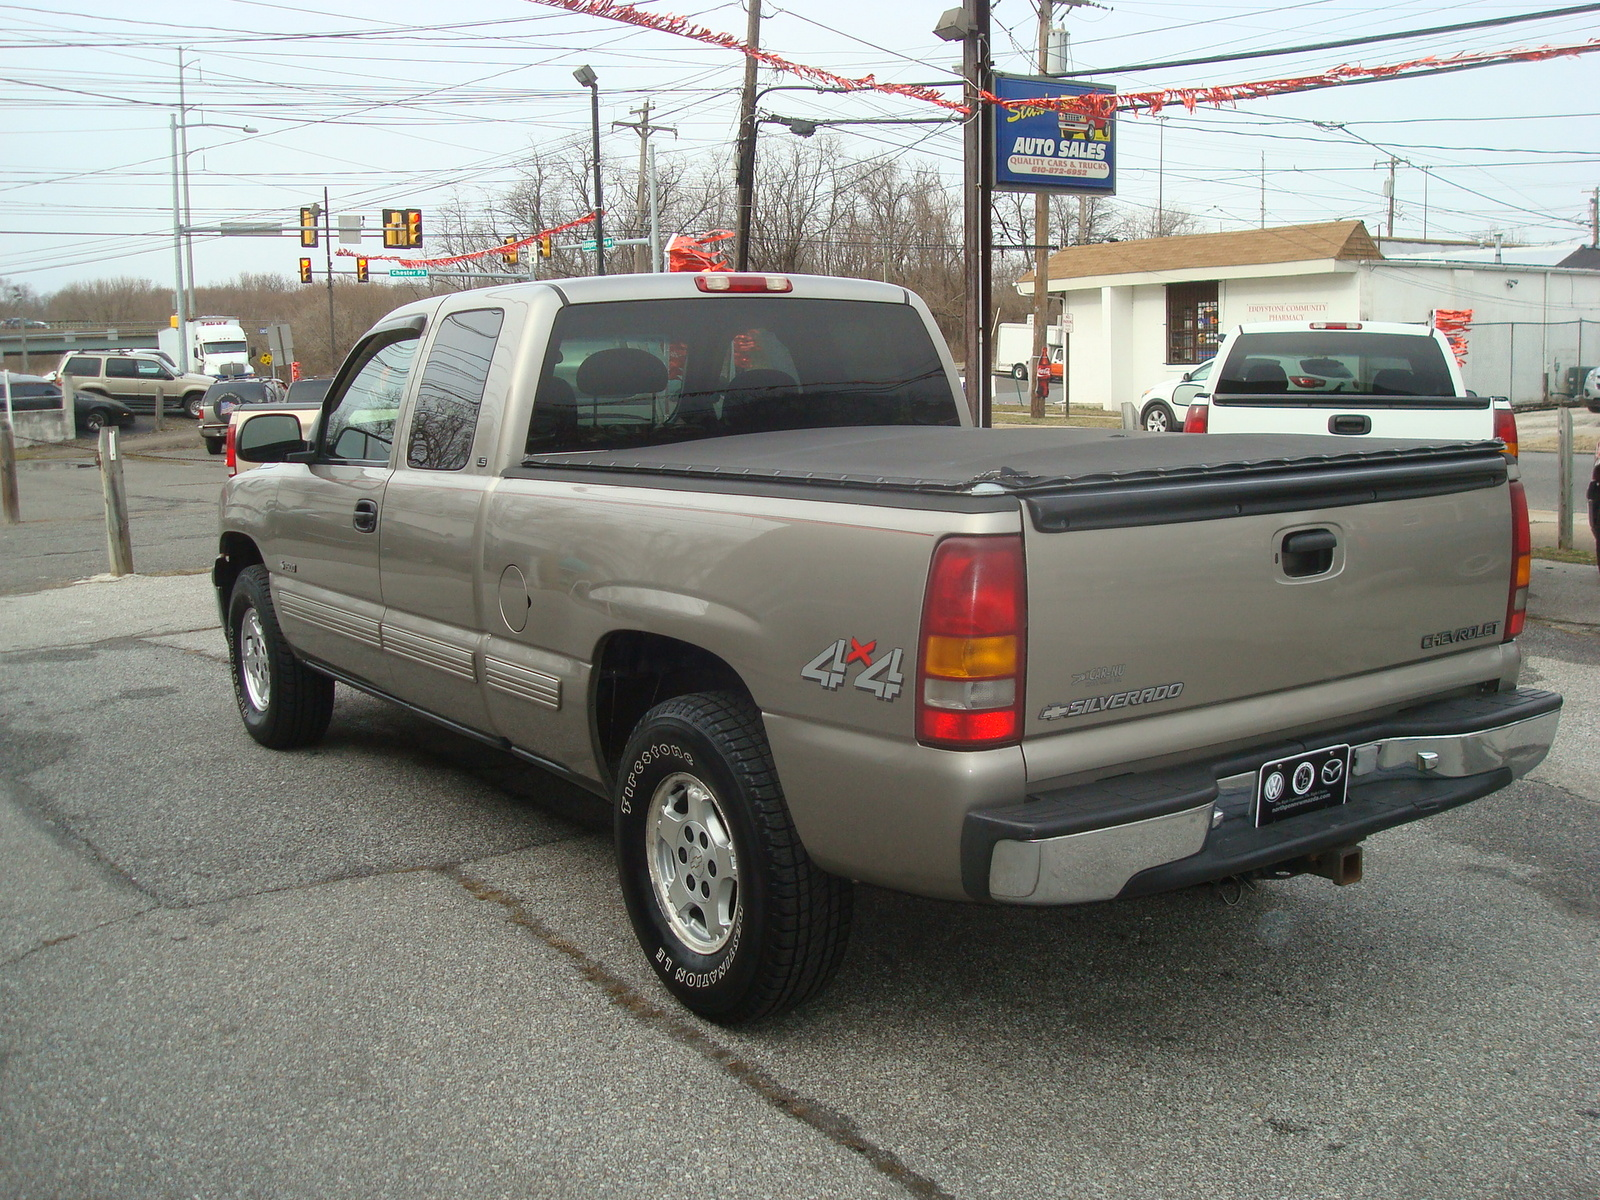 2009 chevrolet silverado 1500 extended cab consumer autos weblog. Black Bedroom Furniture Sets. Home Design Ideas